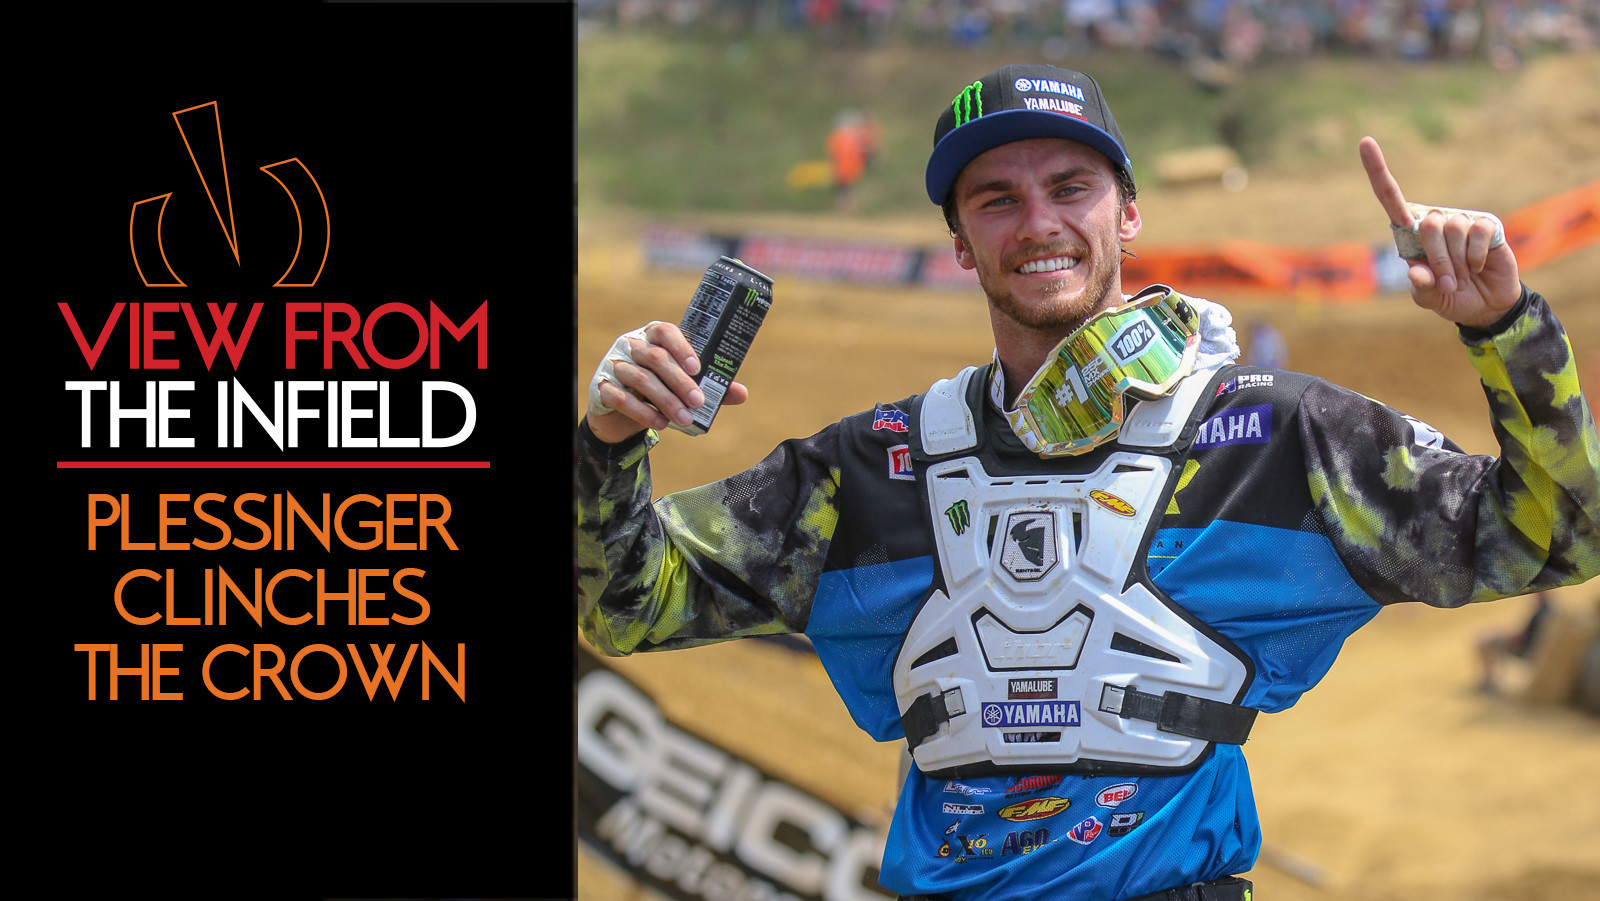 View From The Infield: Plessinger Clinches The Crown